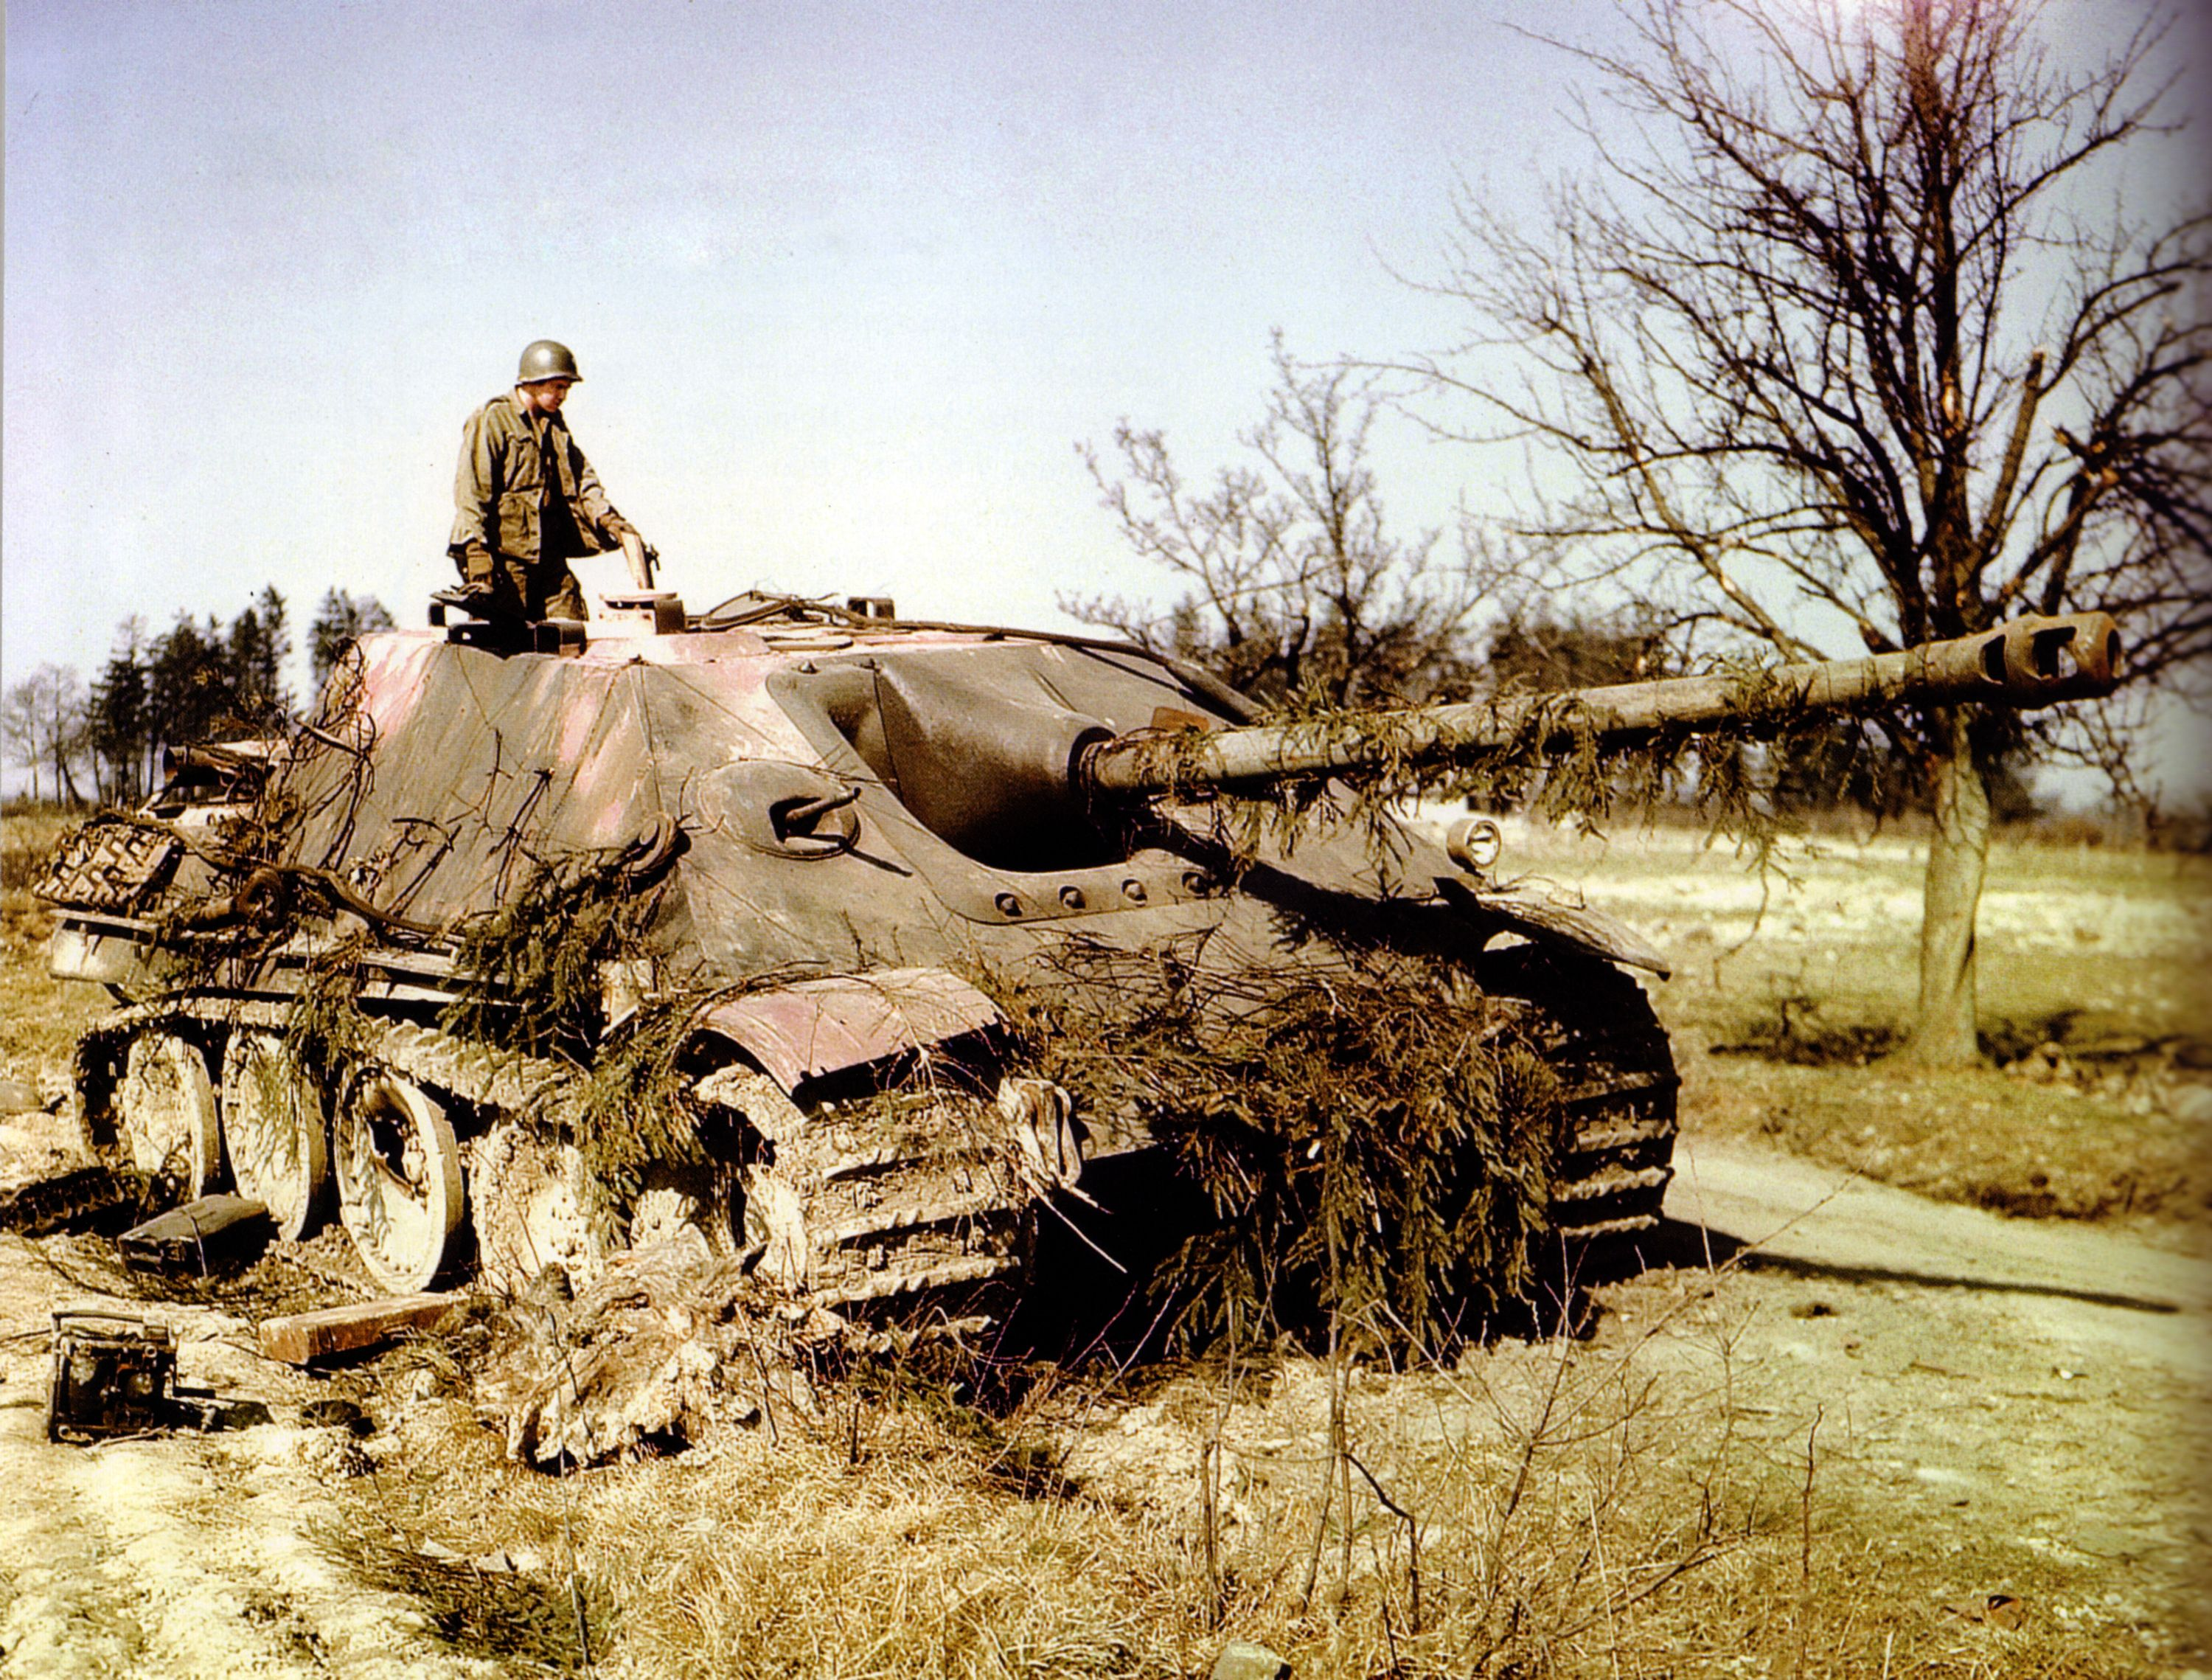 American GI examines knocked out German Panther tank, 1944.